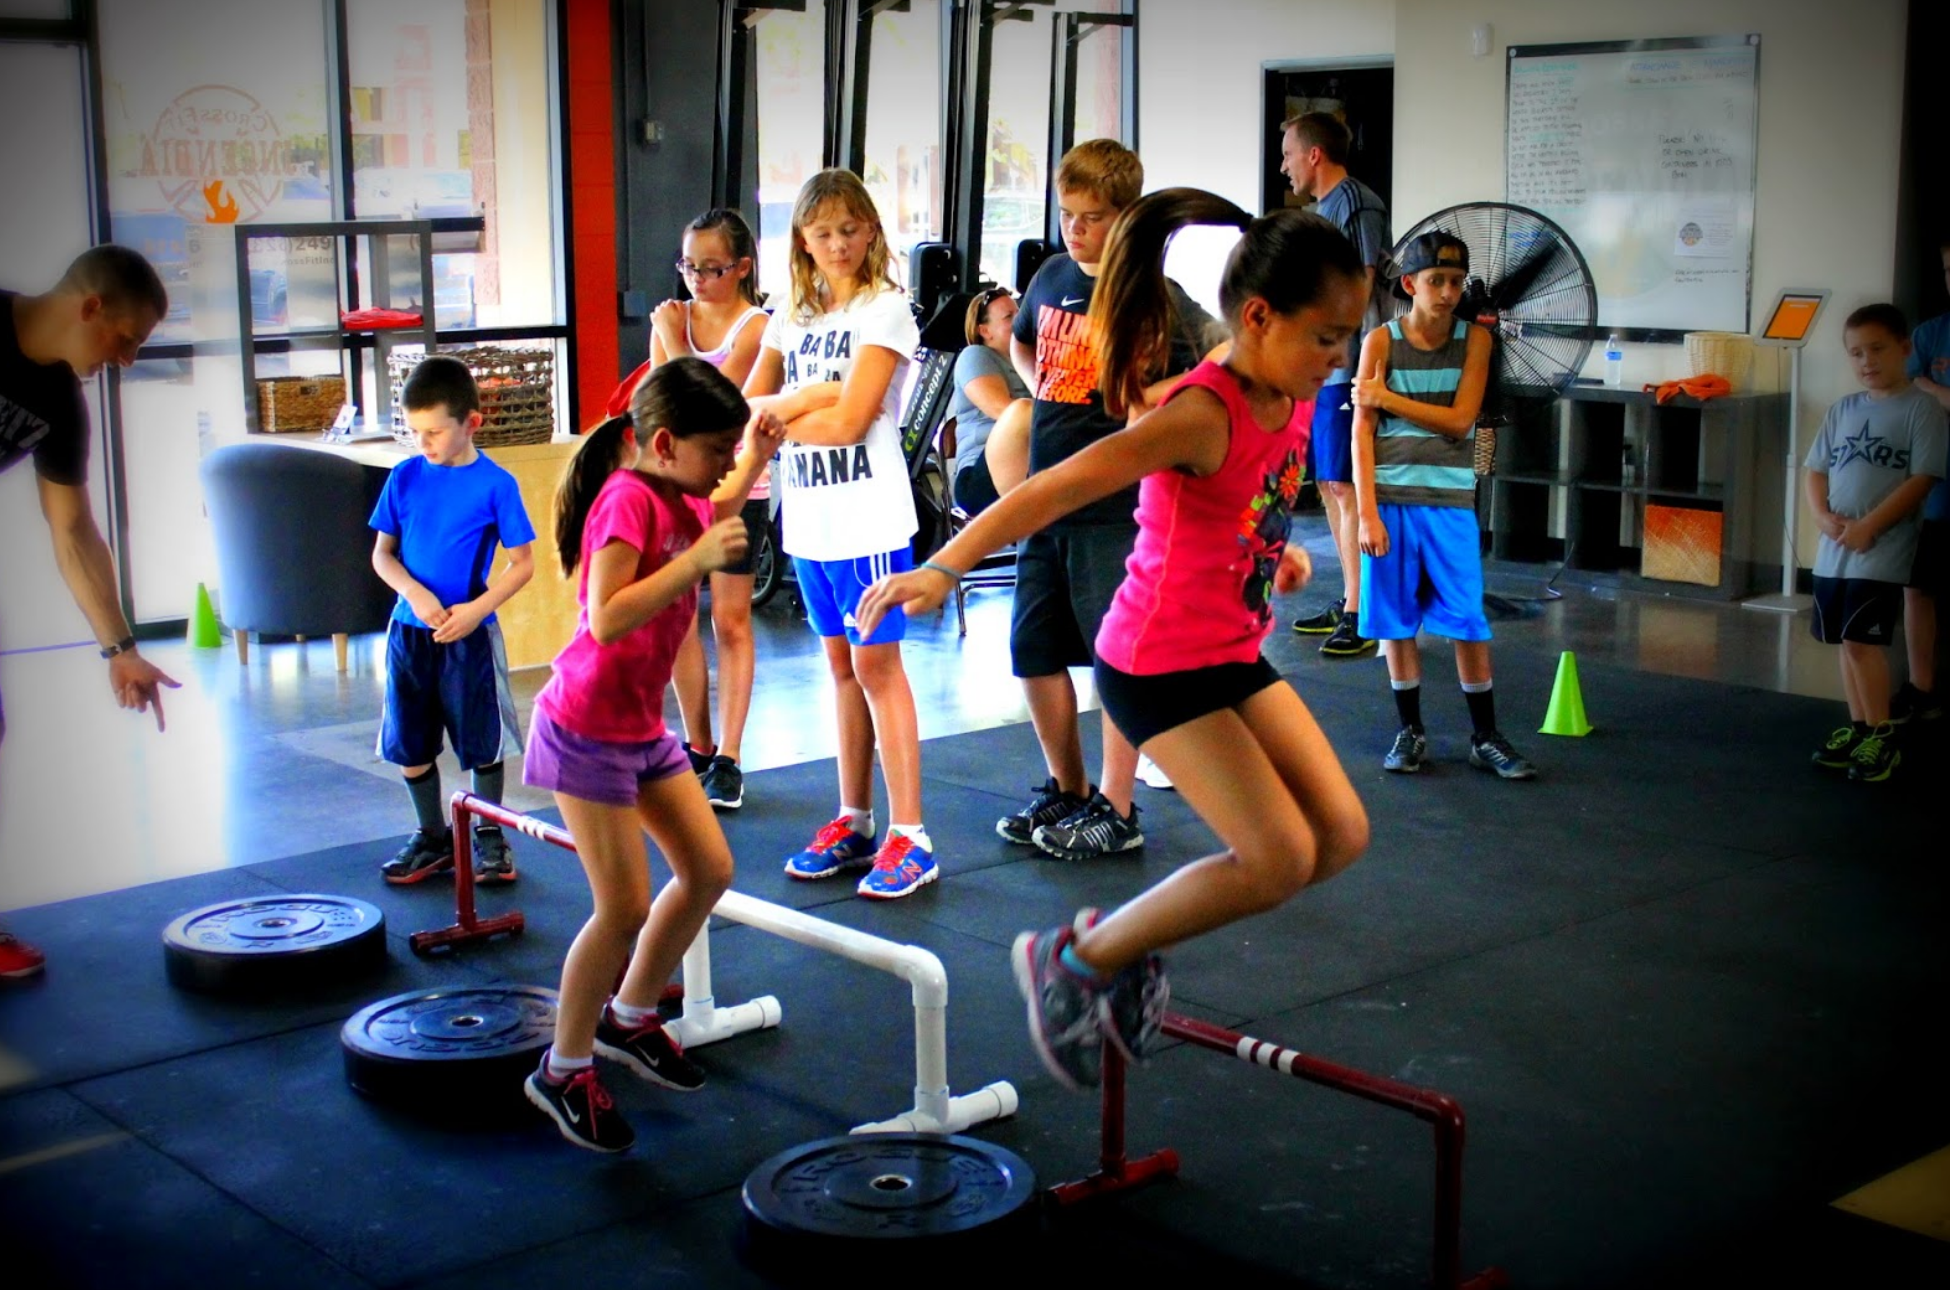 crossfit kids, 500 calorie workouts you can do with your kids - crossfit kids